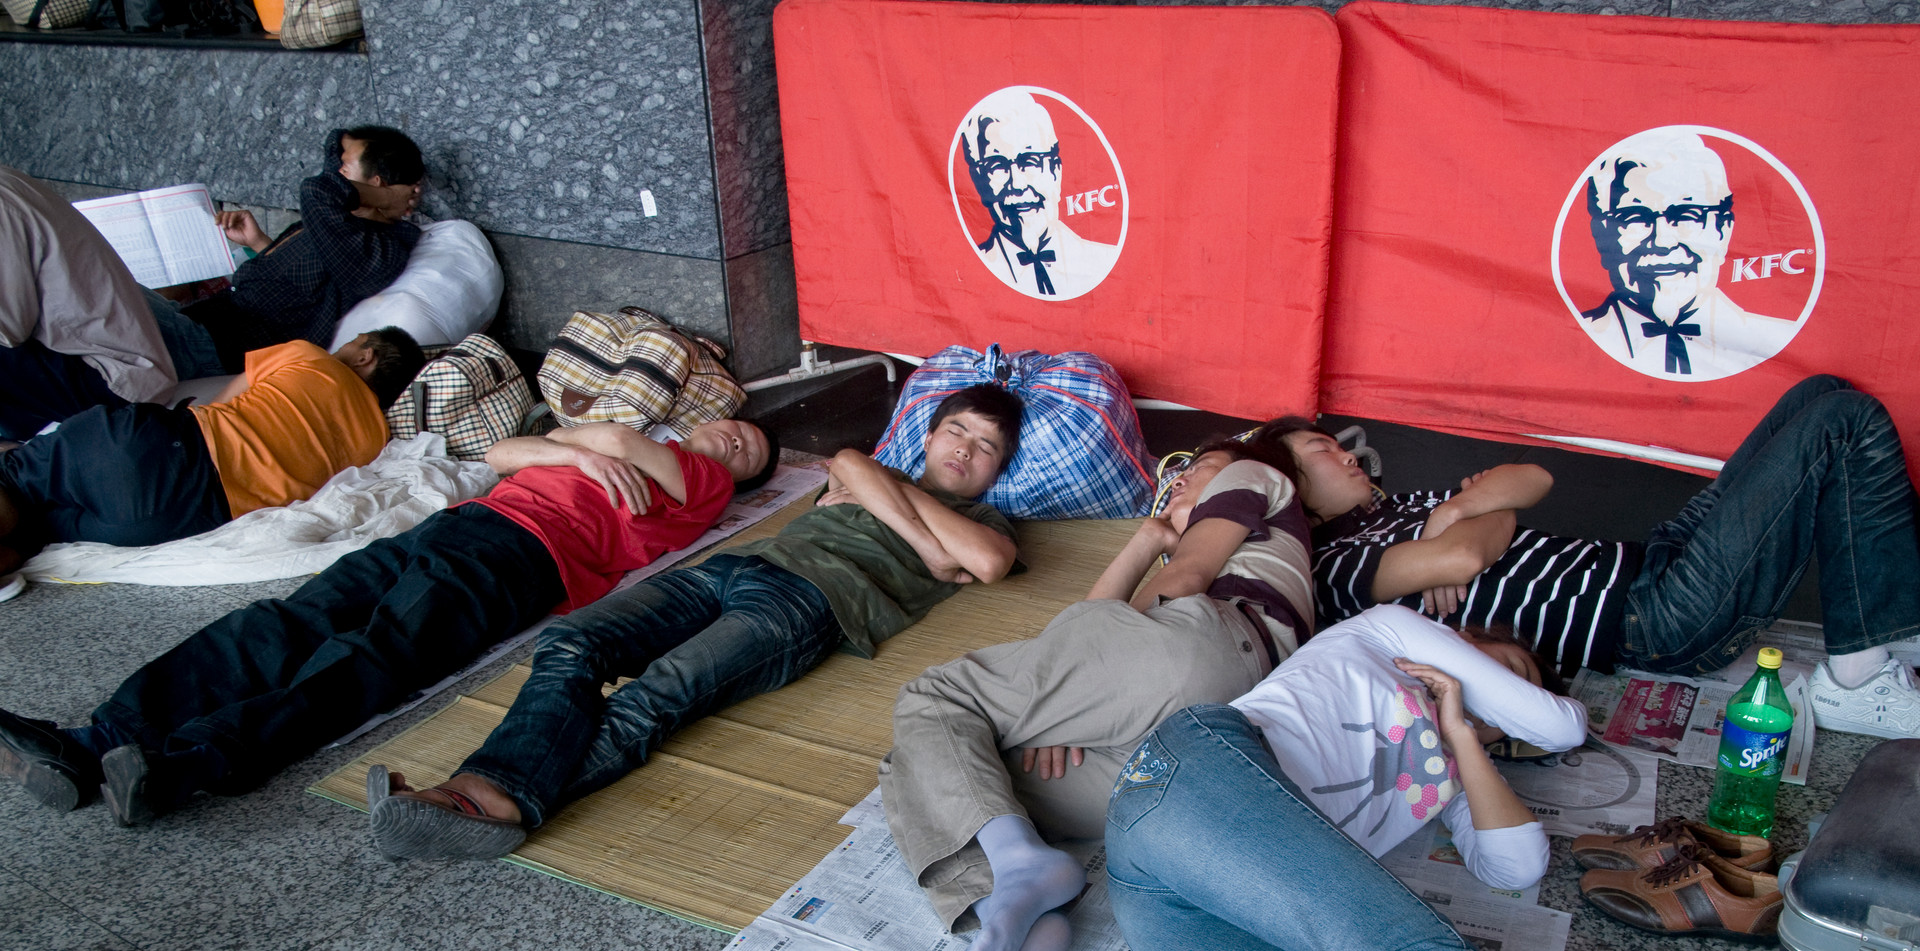 Migrant workers from the hinterland sleeping in the streets of Guangzhou, China